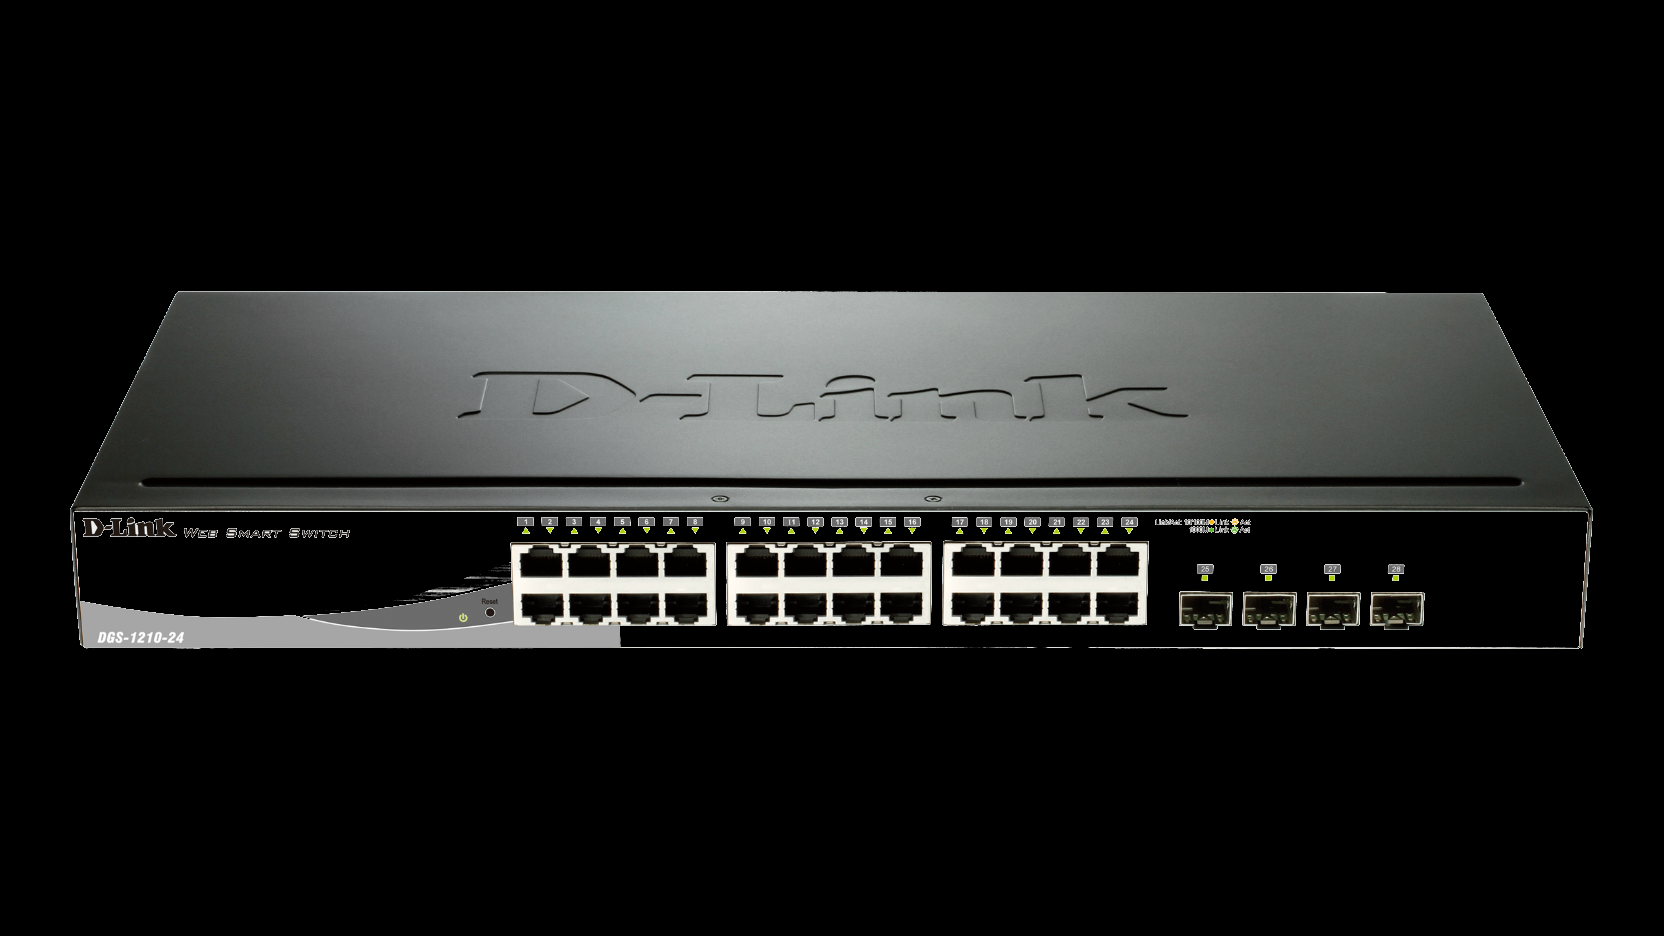 HÁLÓZATI SWITCH DLINK DGS-1210-16 16PORT